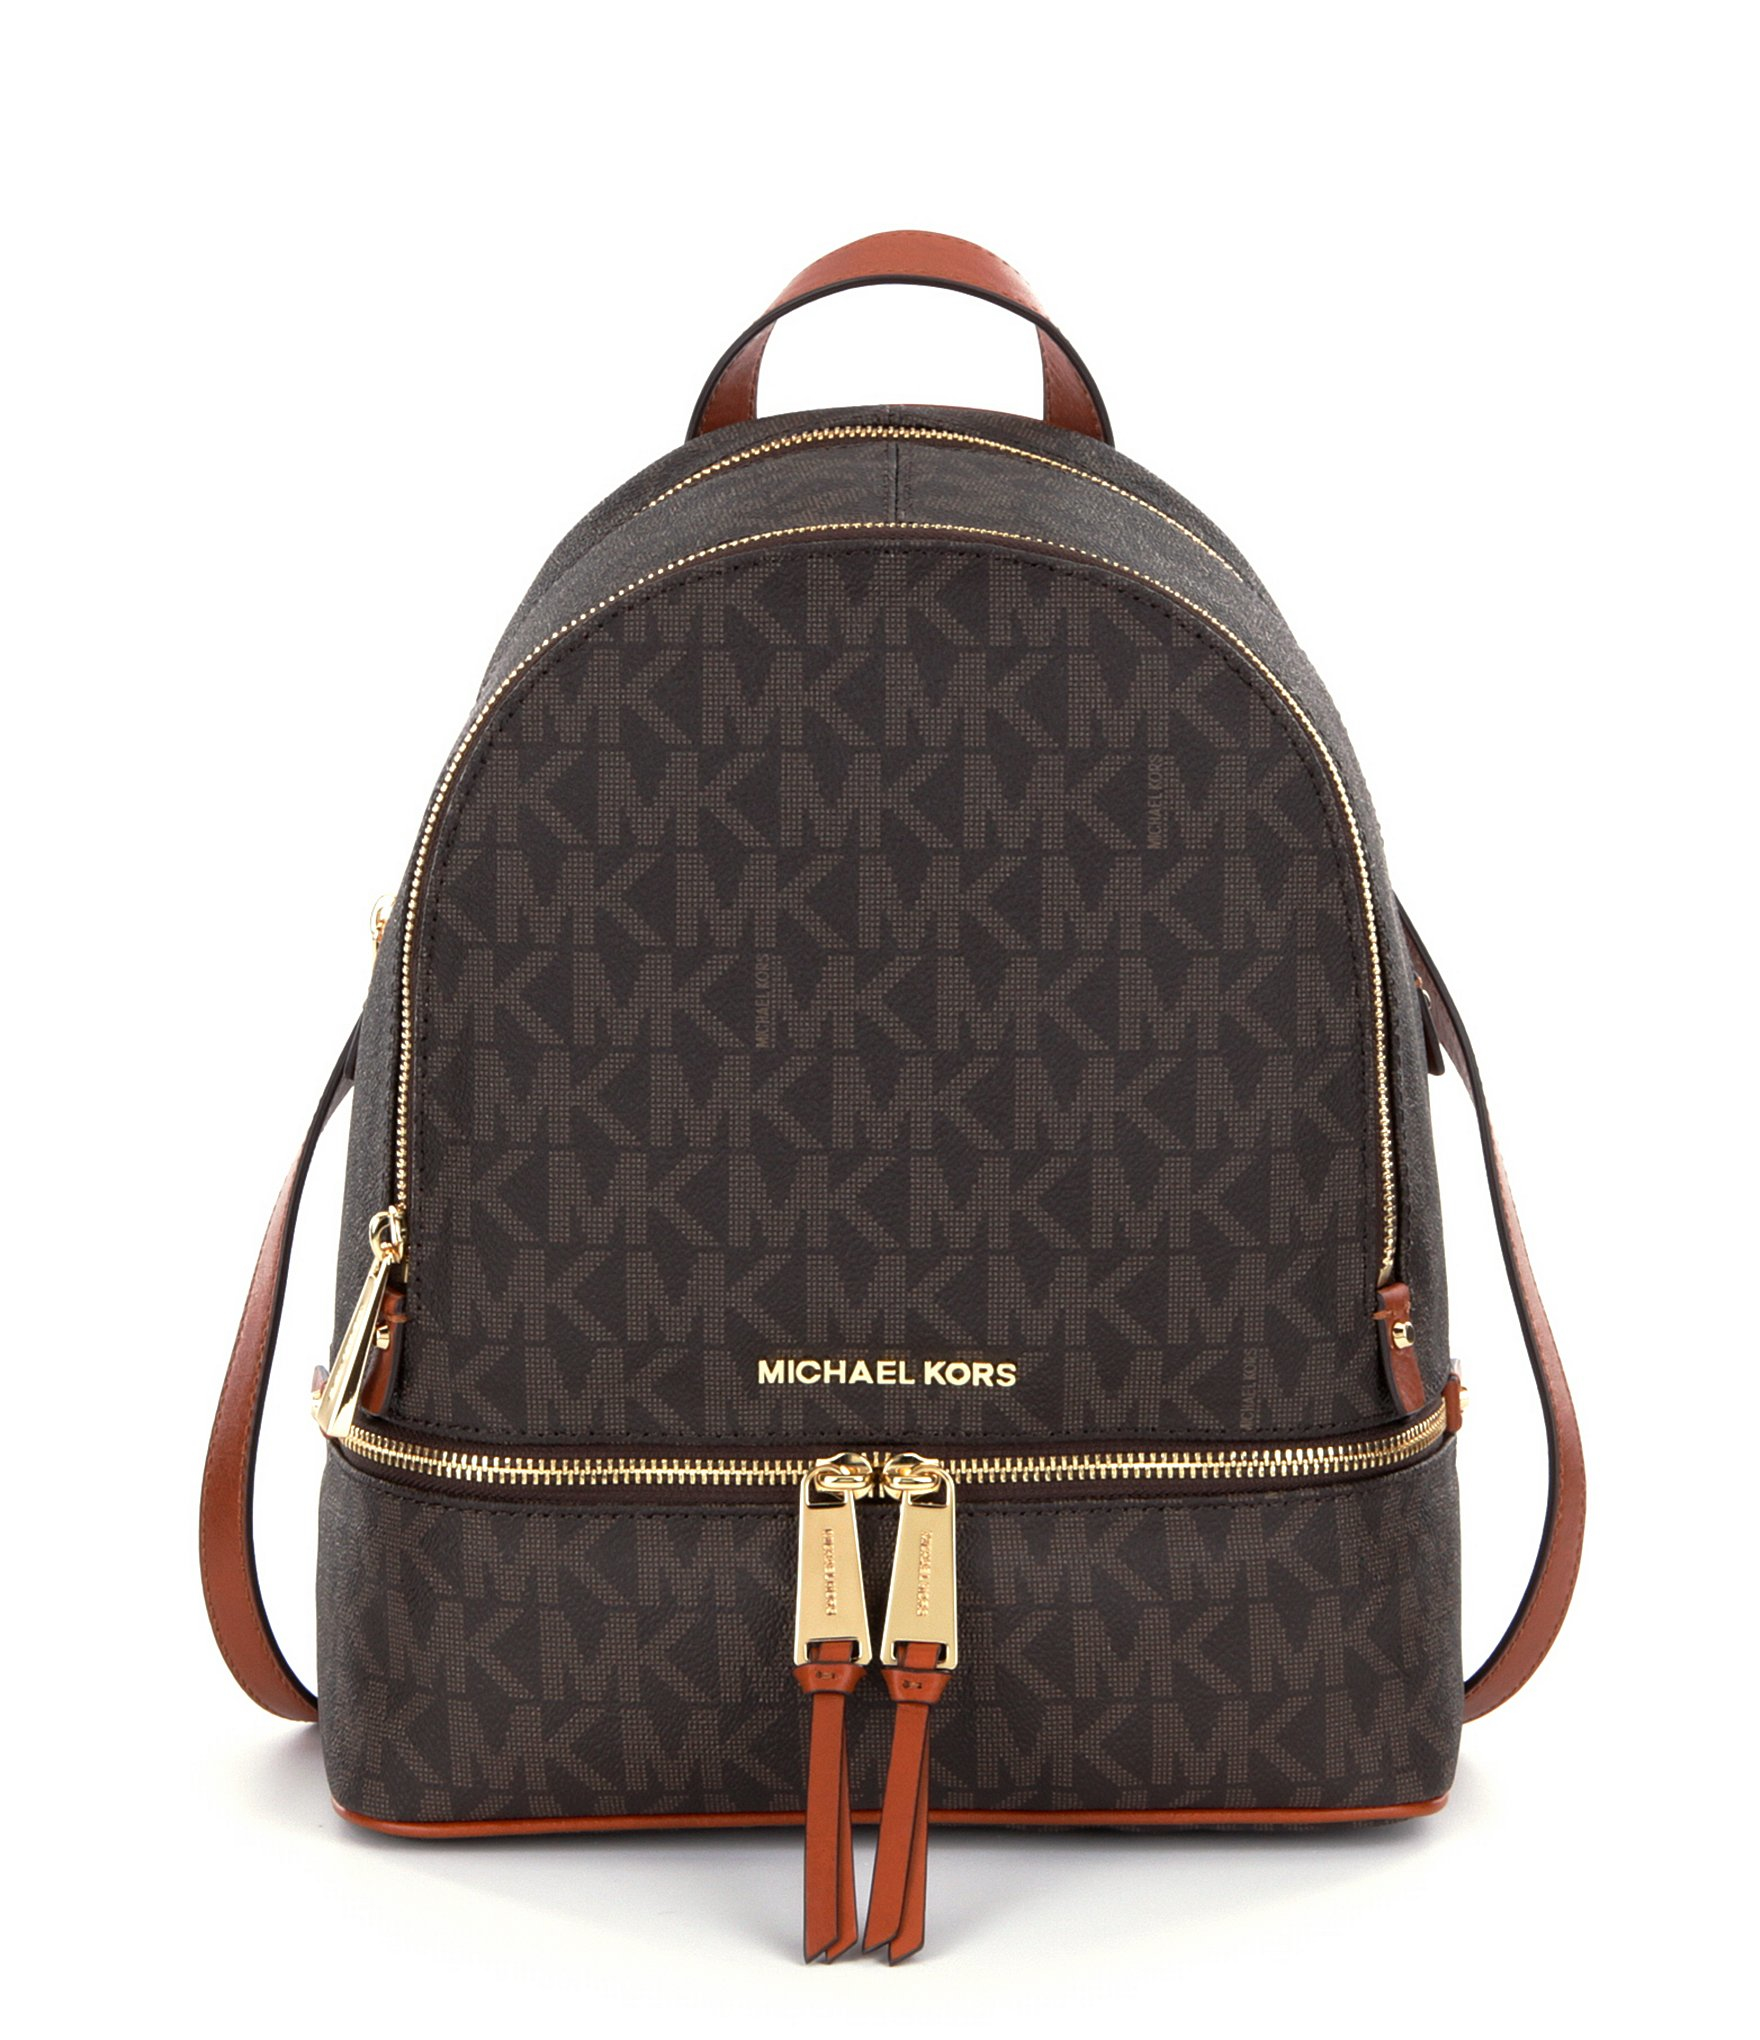 Michael Kors Mini Backpack Brown- Fenix Toulouse Handball 6560efe80d